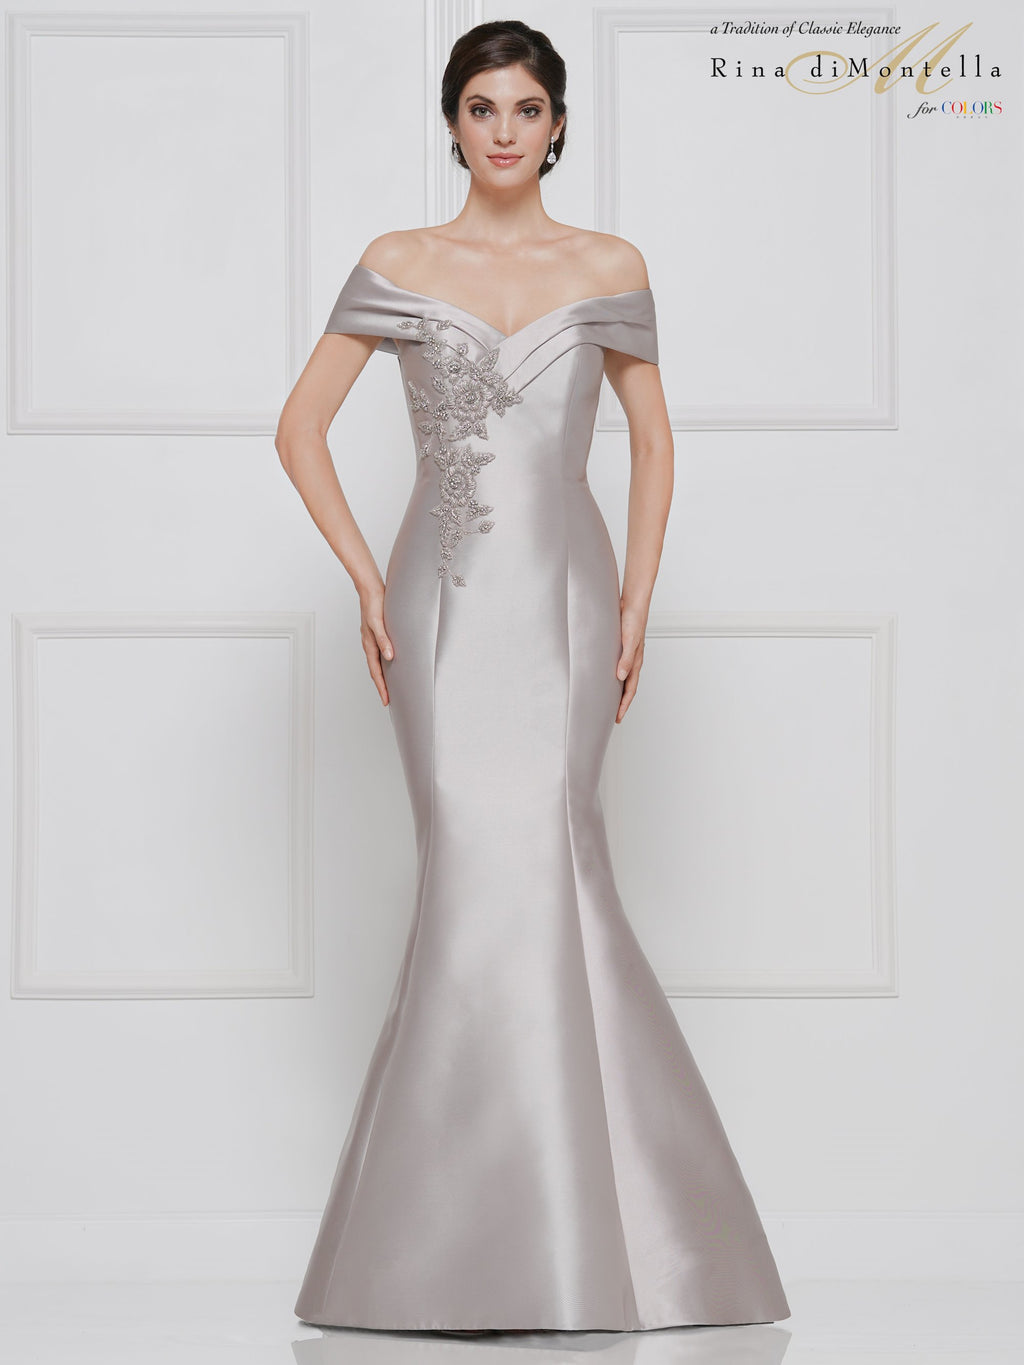 RINA DIMONTELLA BY COLORS GOWN #rd2602